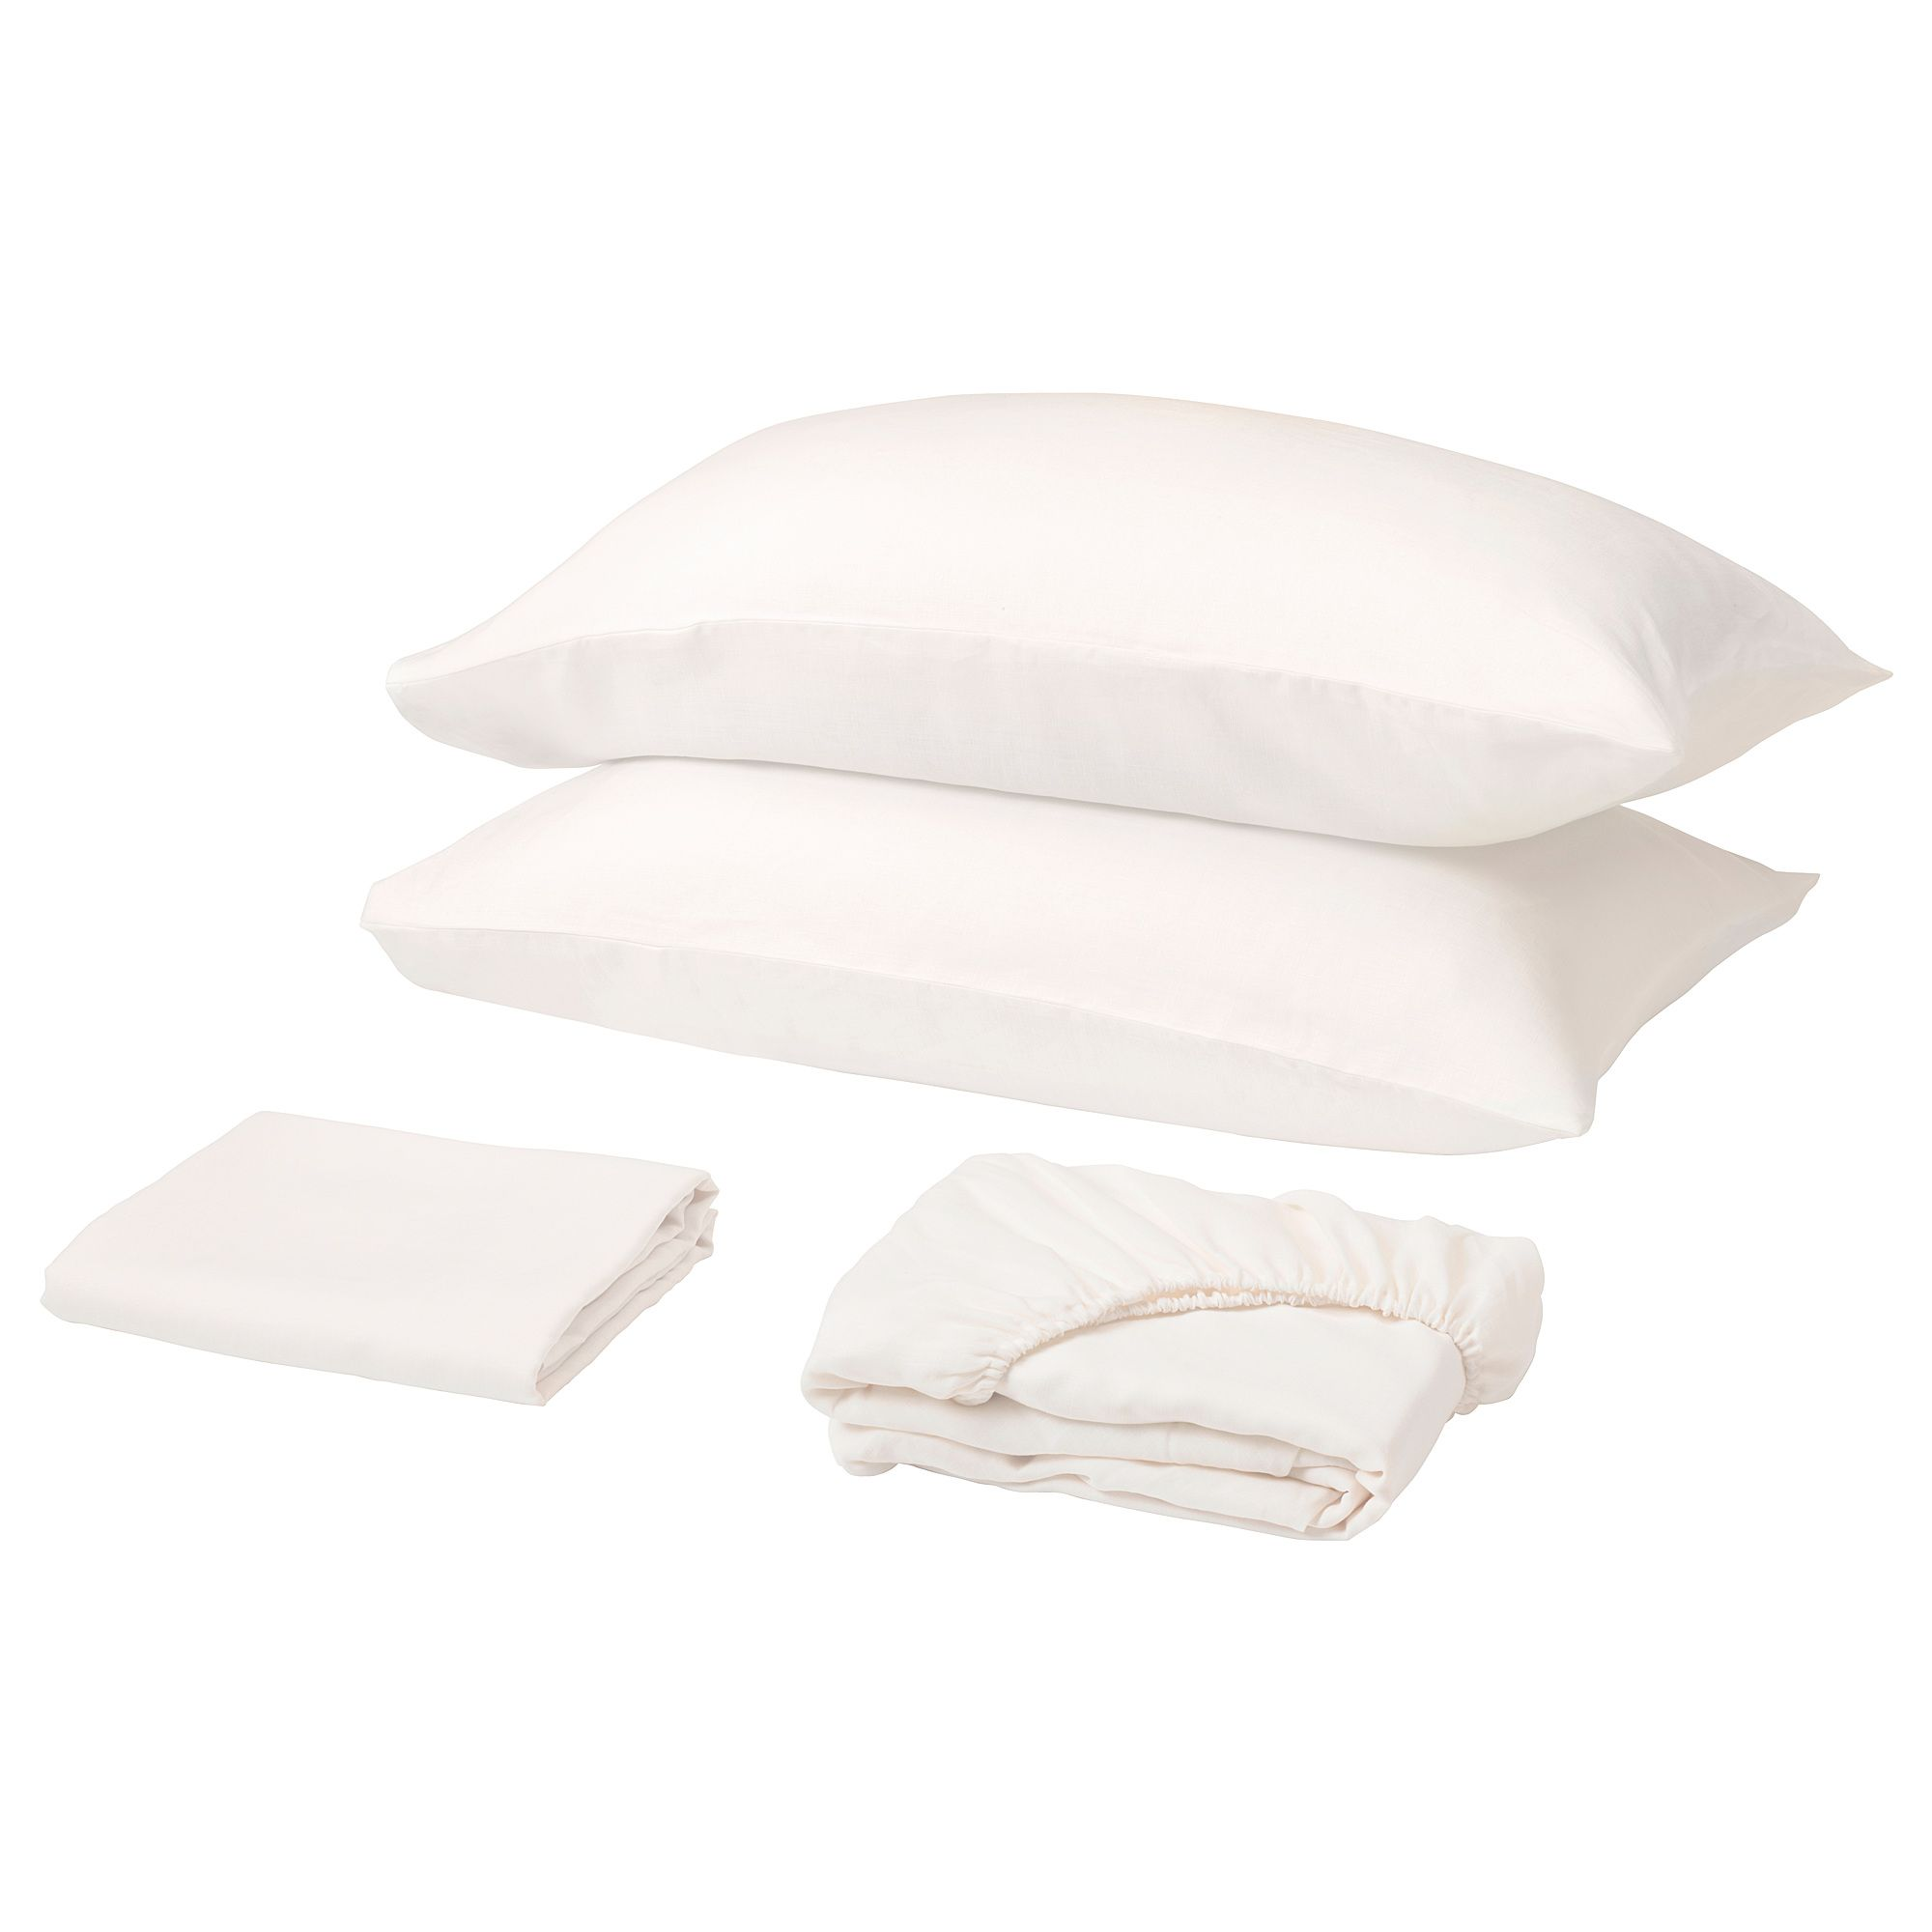 Ikea Puderviva Sheet Set White